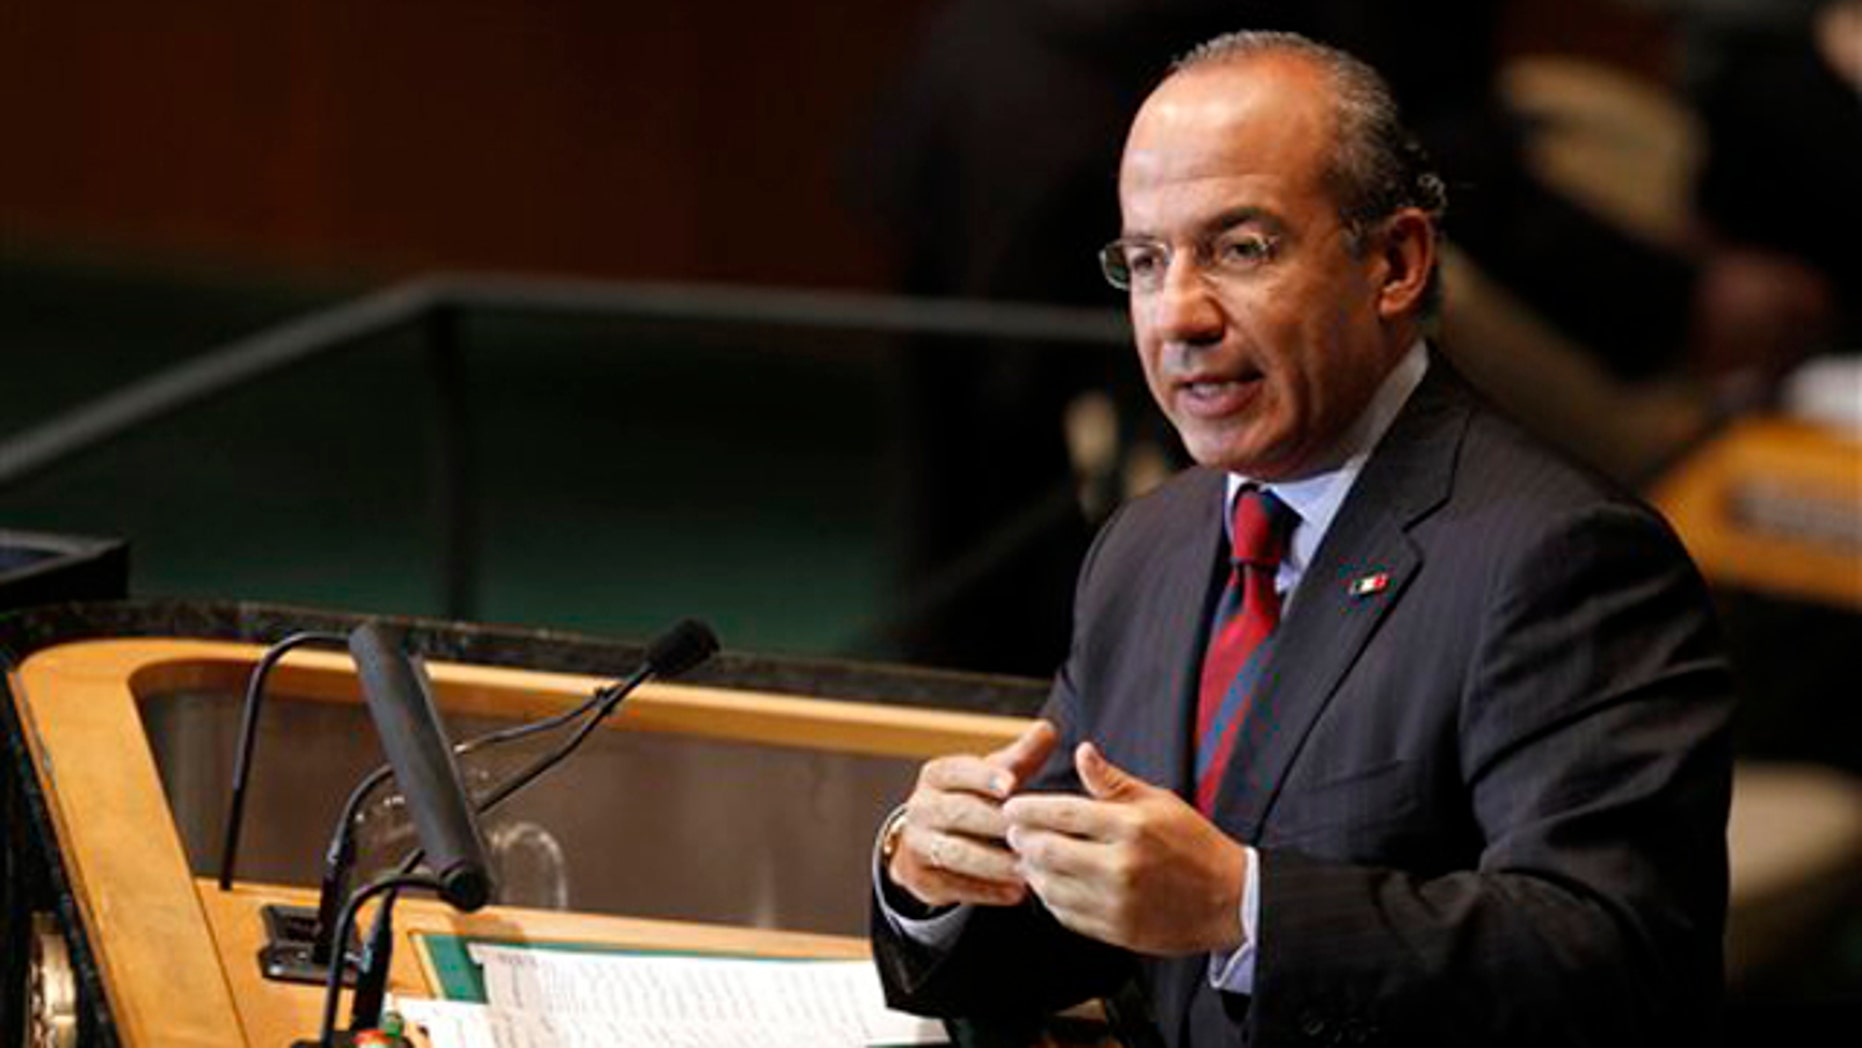 Mexican President Felipe Calderon addresses the 66th session of the United Nations General Assembly at U.N. headquarters Sept. 21.